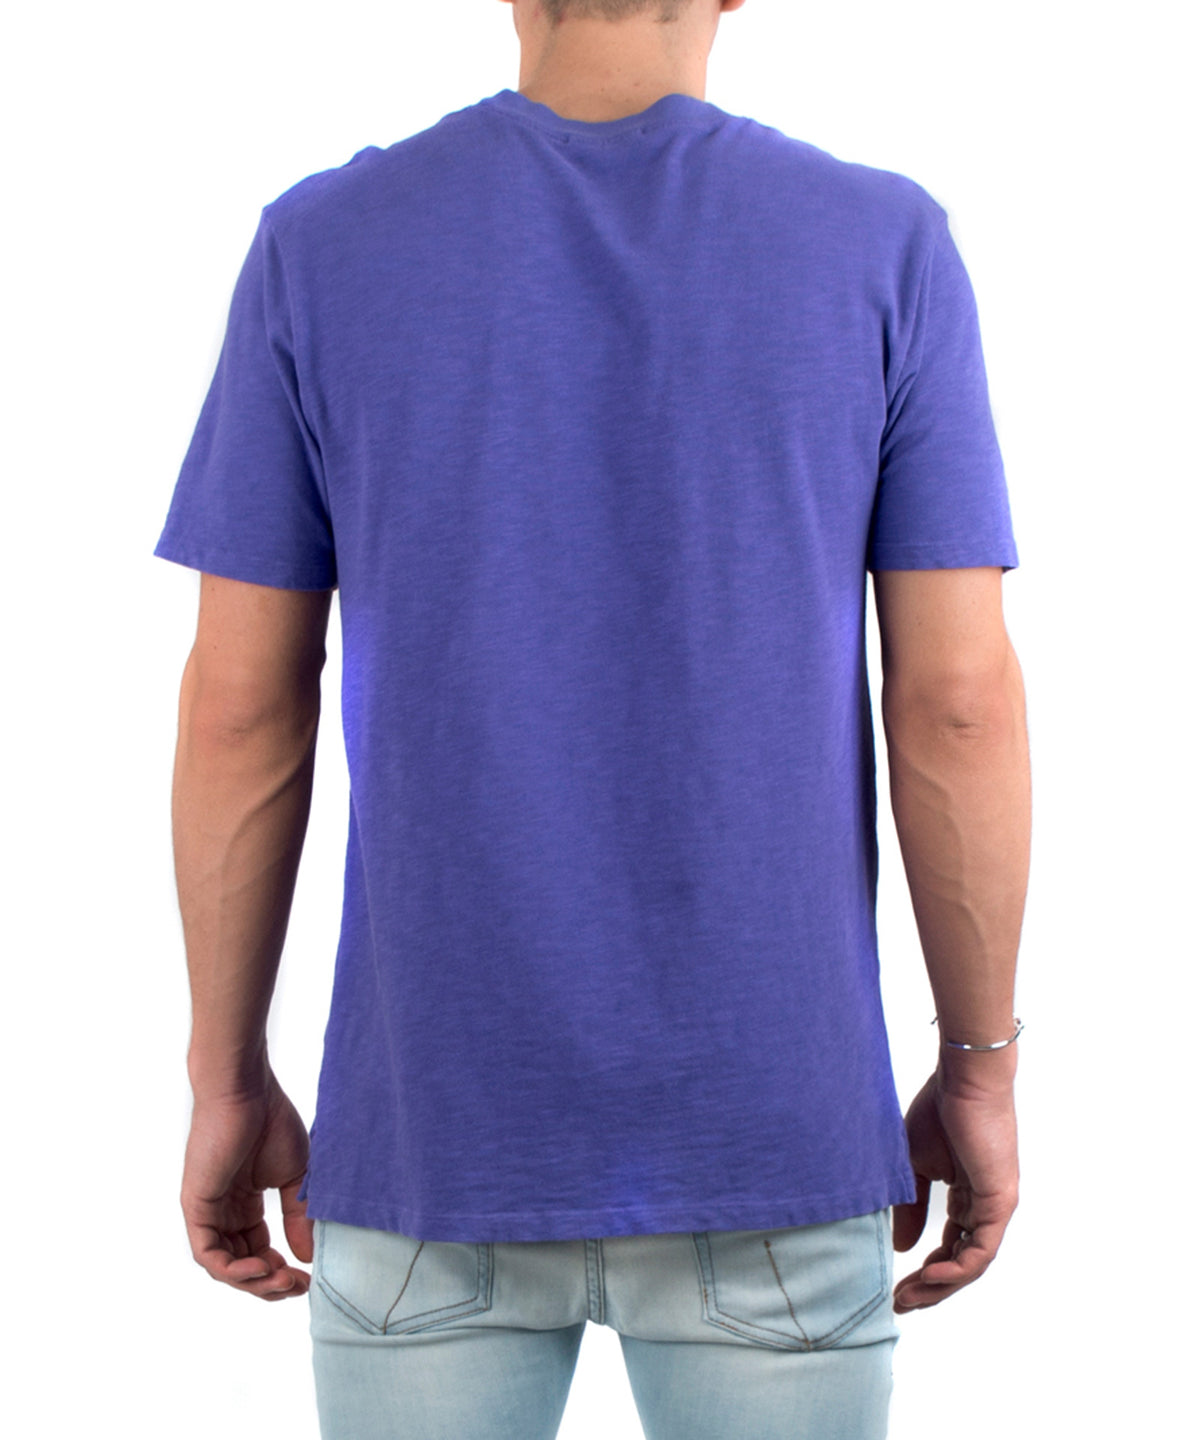 The Presley Tee Purple-BACK VIEW-THE BOX BOUTIQUE